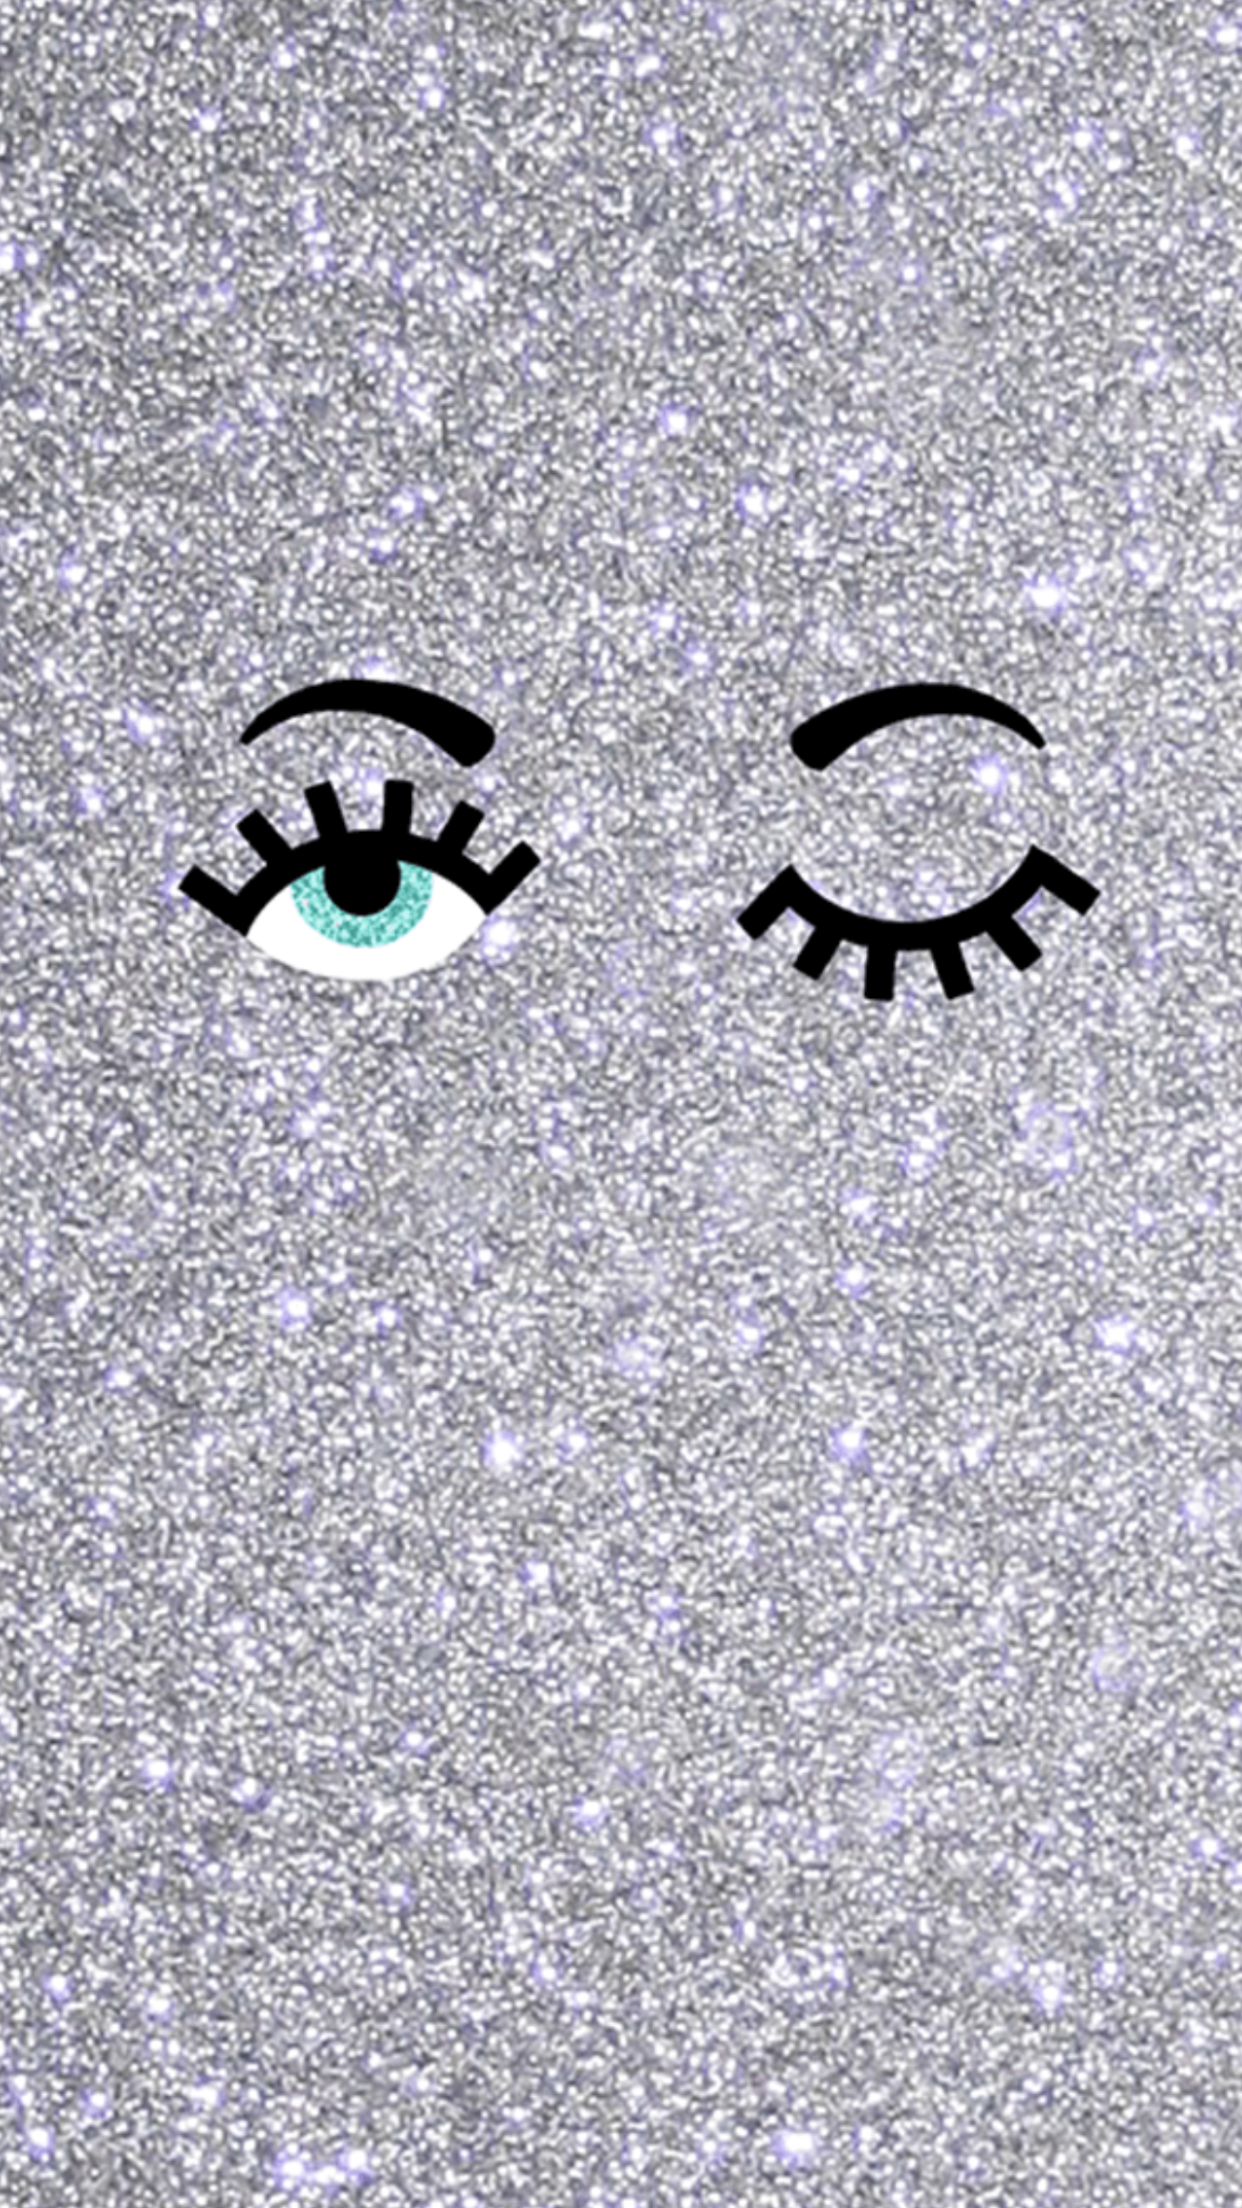 Makeup iphone wallpaper tumblr - Jijijiji M S Glitter Wallschiara Ferragniwall Paperstumblr Backgroundsiphone